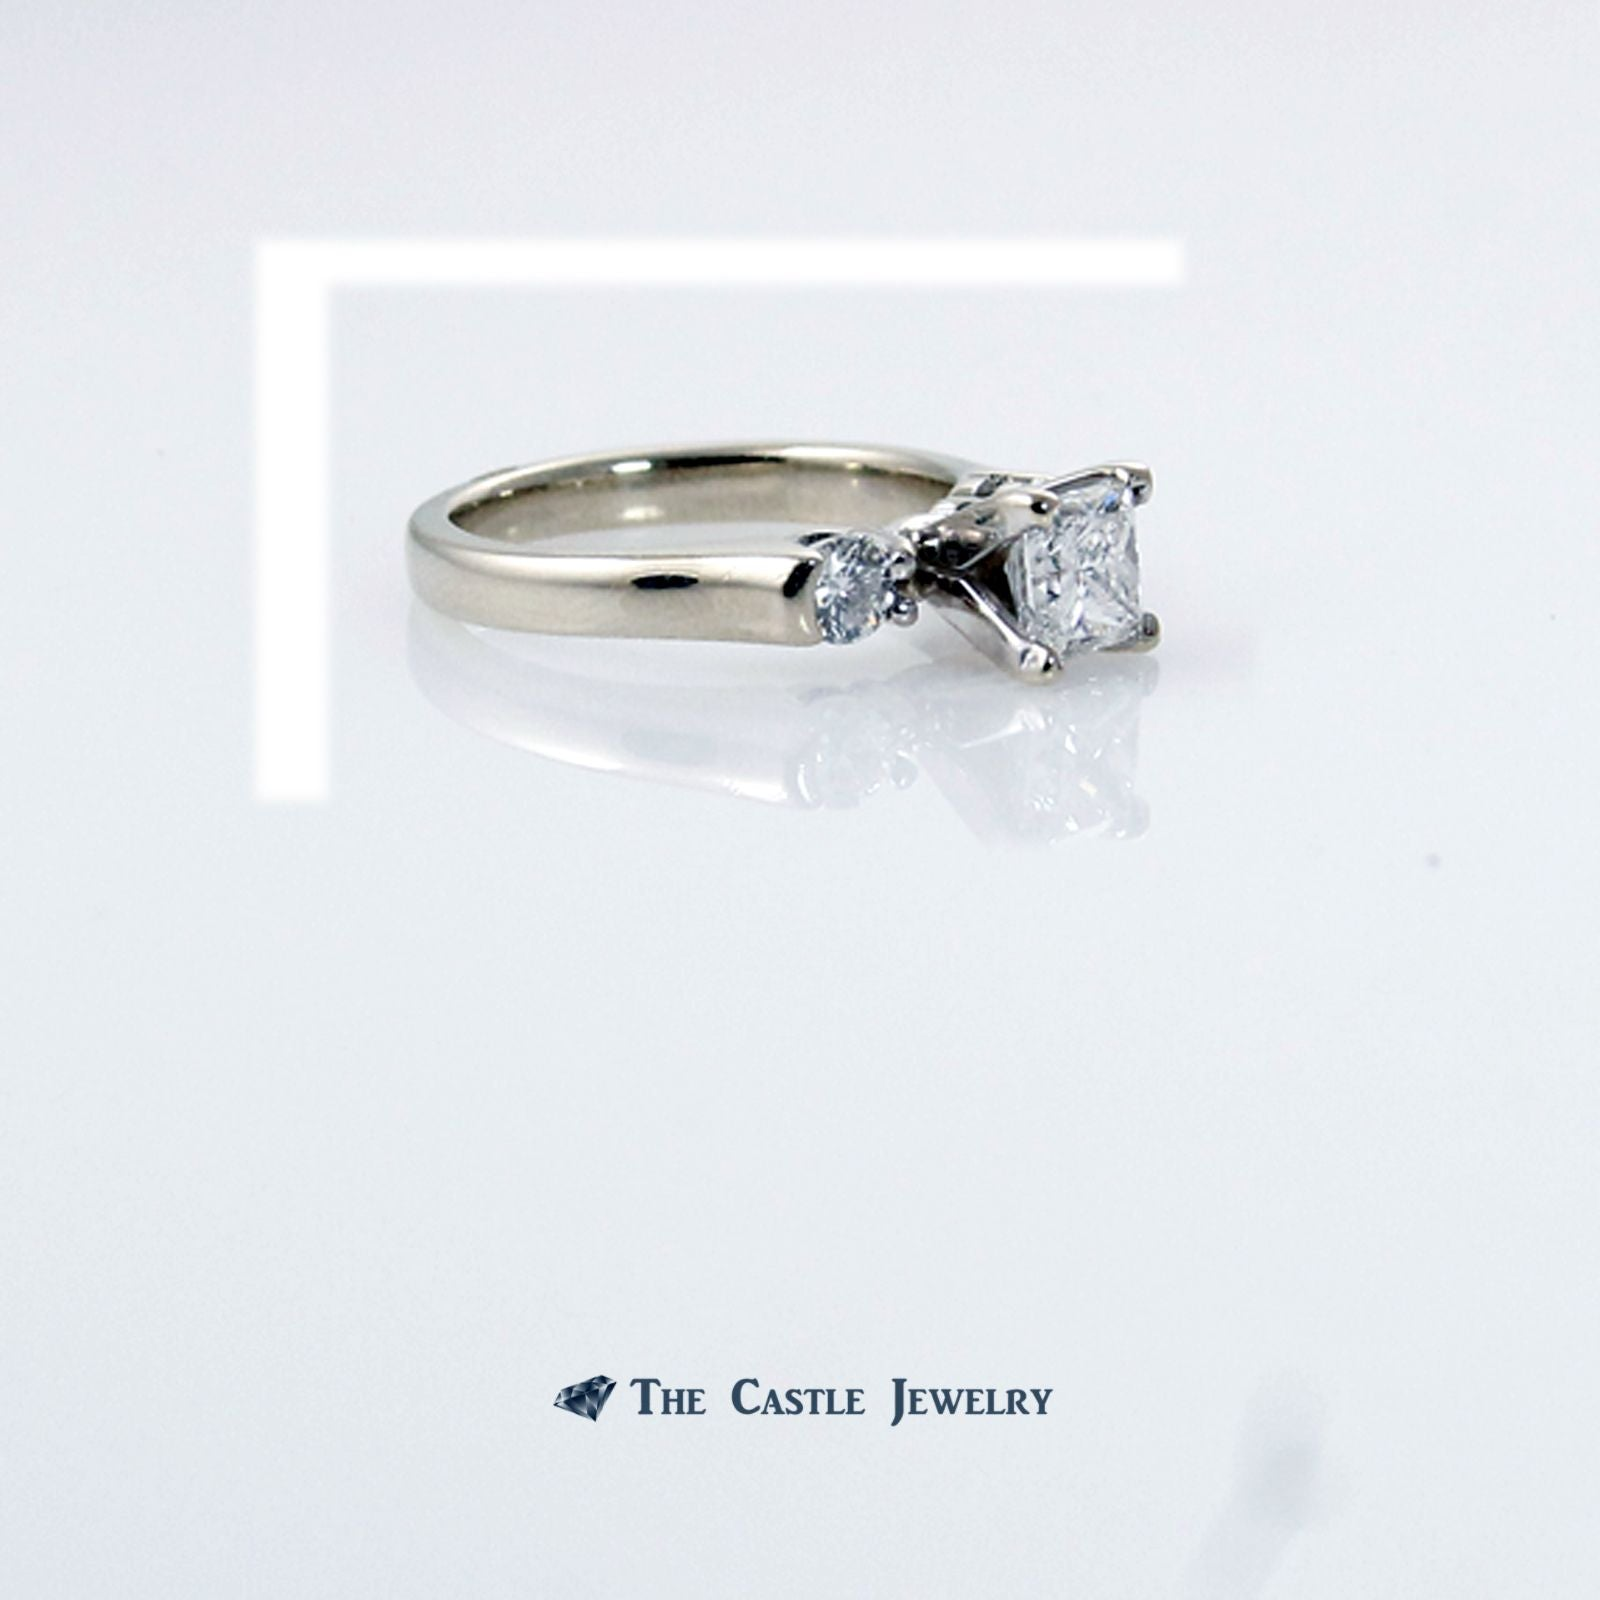 Princess Cut Diamond Engagement Ring with Round Accents in 14K White Gold-2